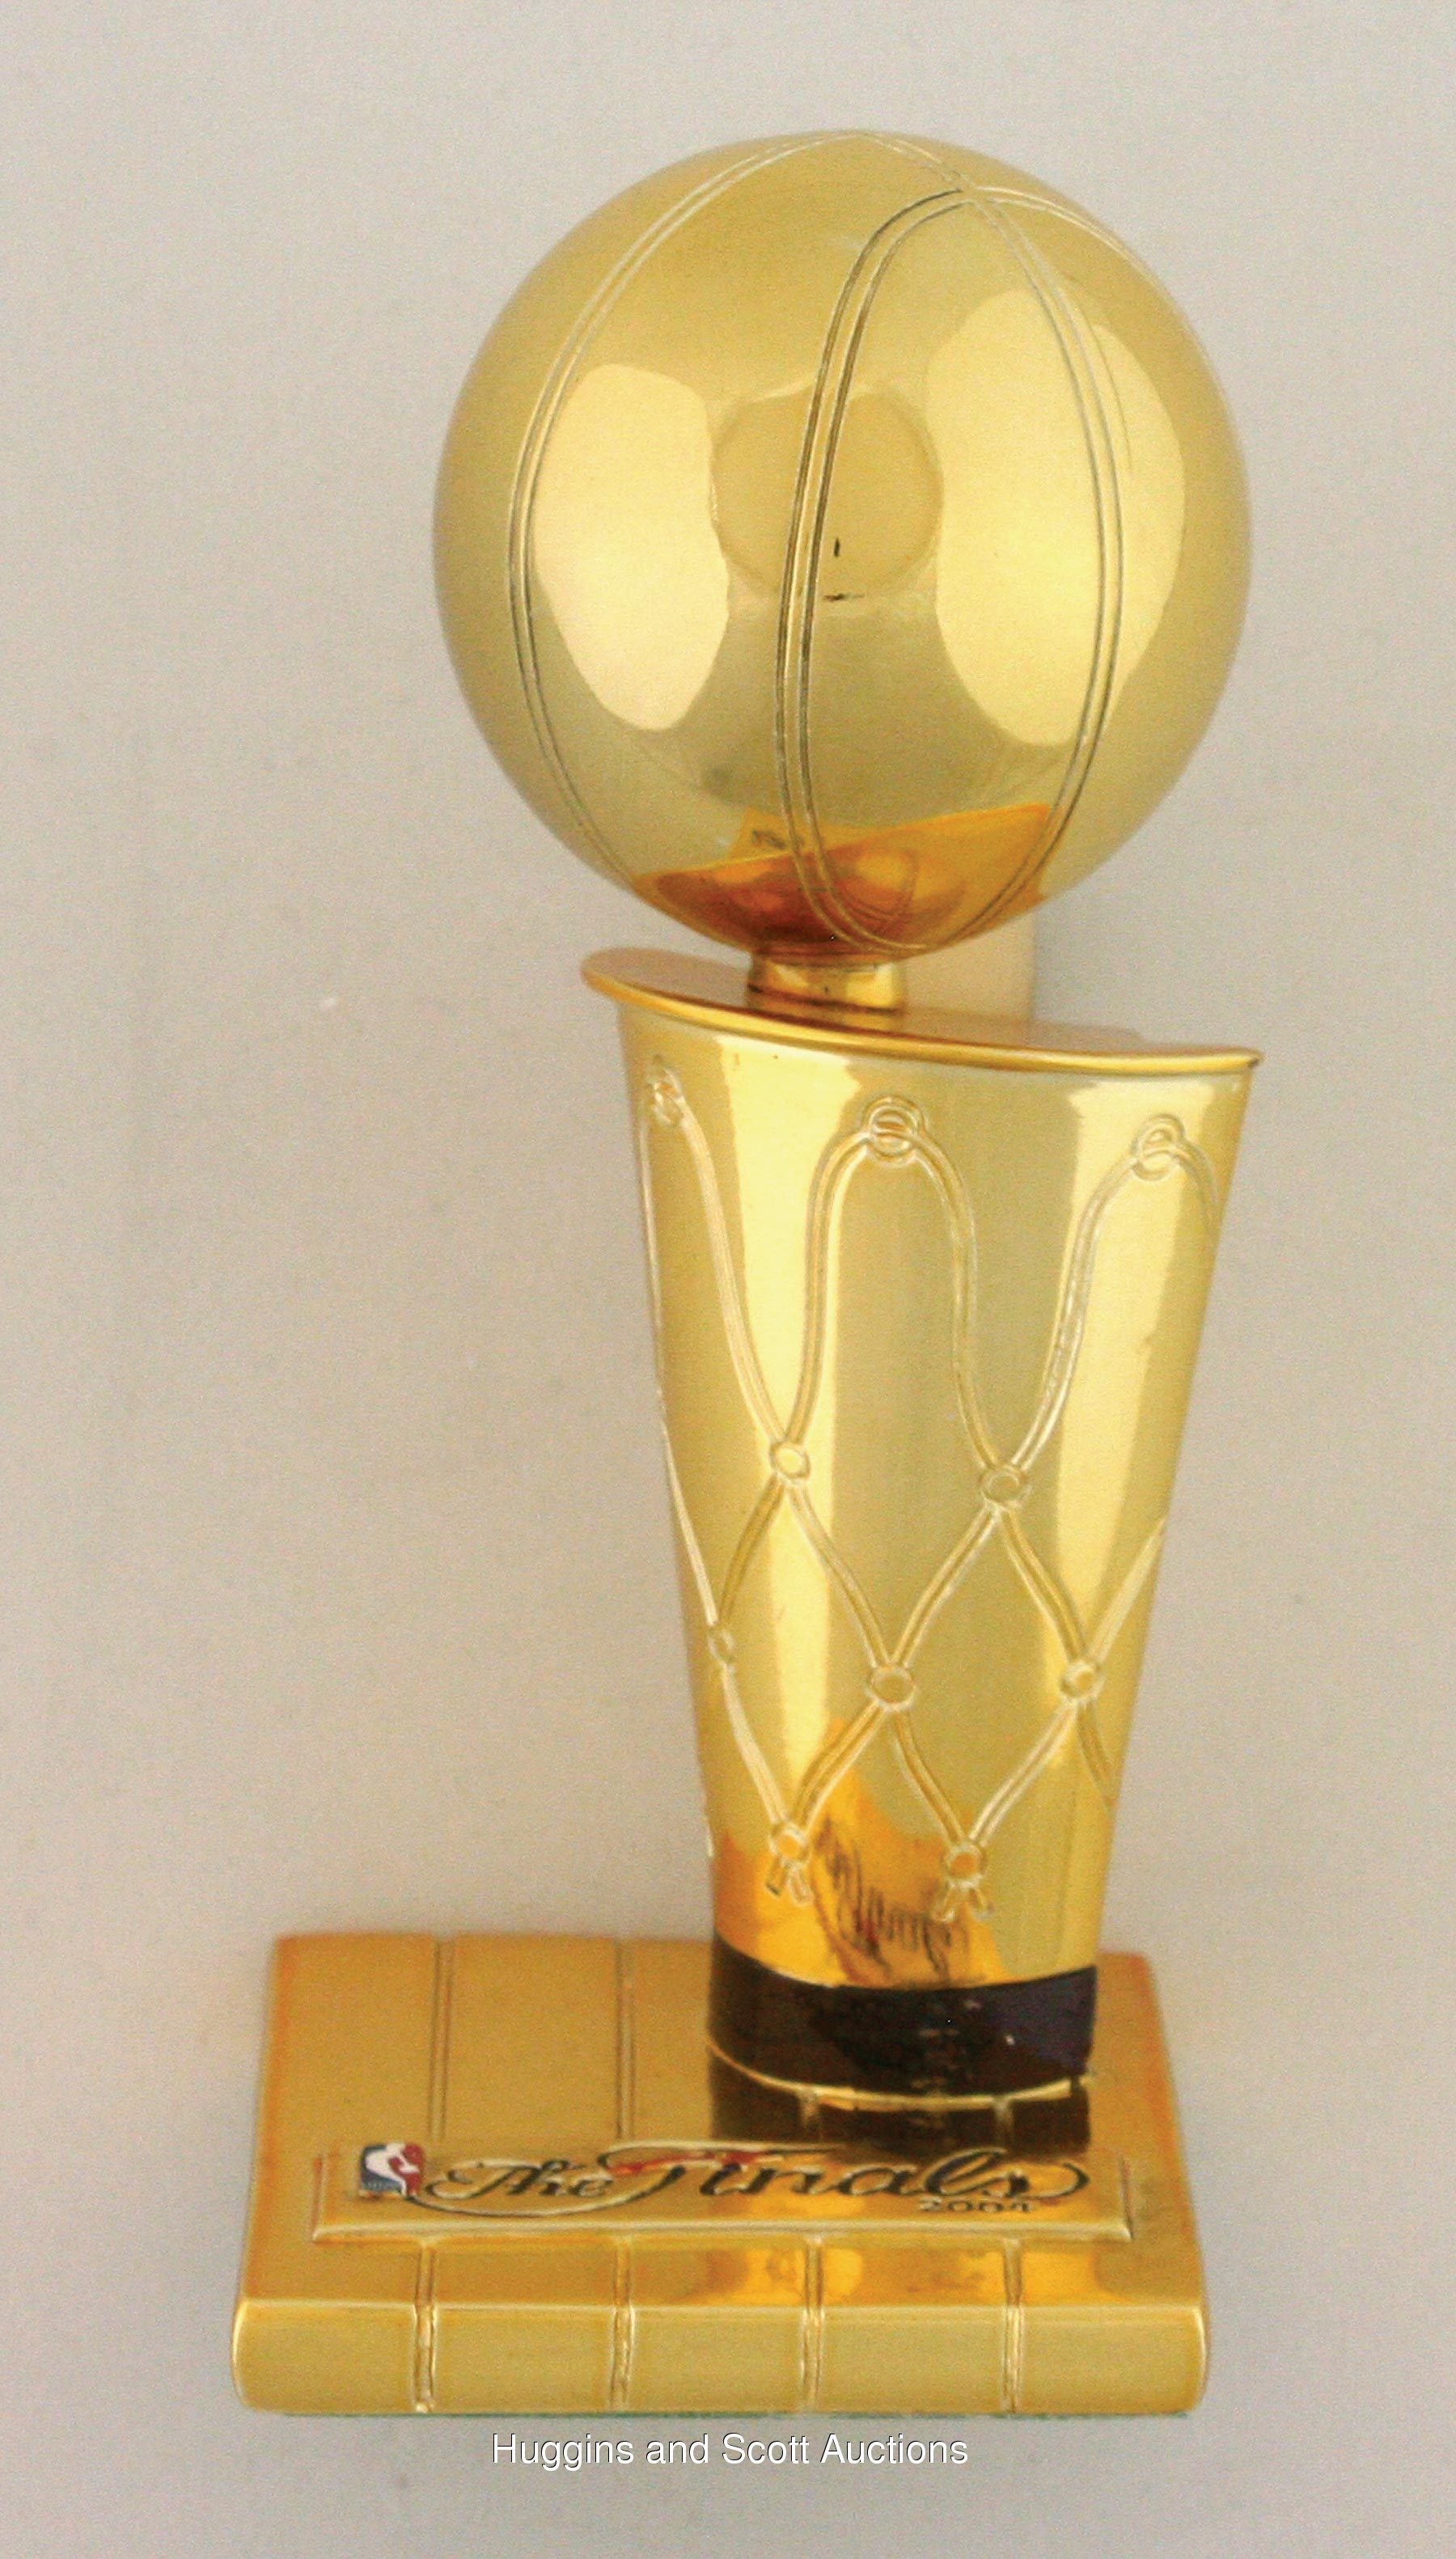 Basketball Championship Trophy | www.imgkid.com - The Image Kid Has It!